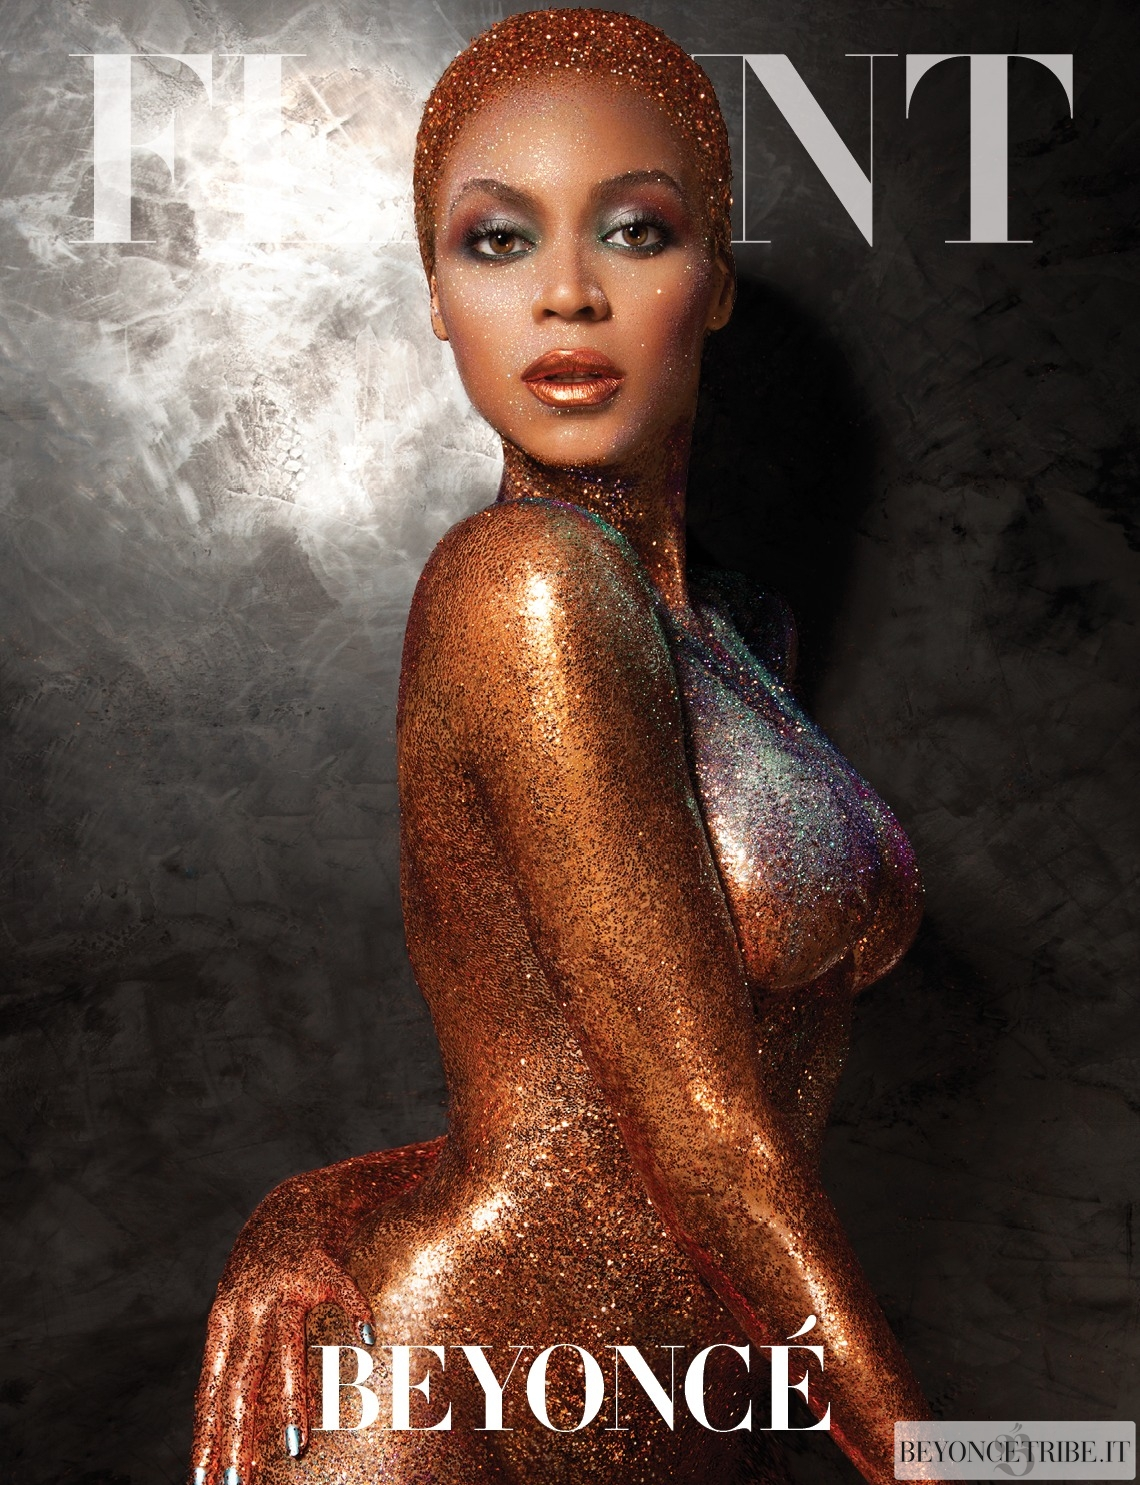 Beyoncé on photoshoot by Tony Duran for Flaunt magazine 2013